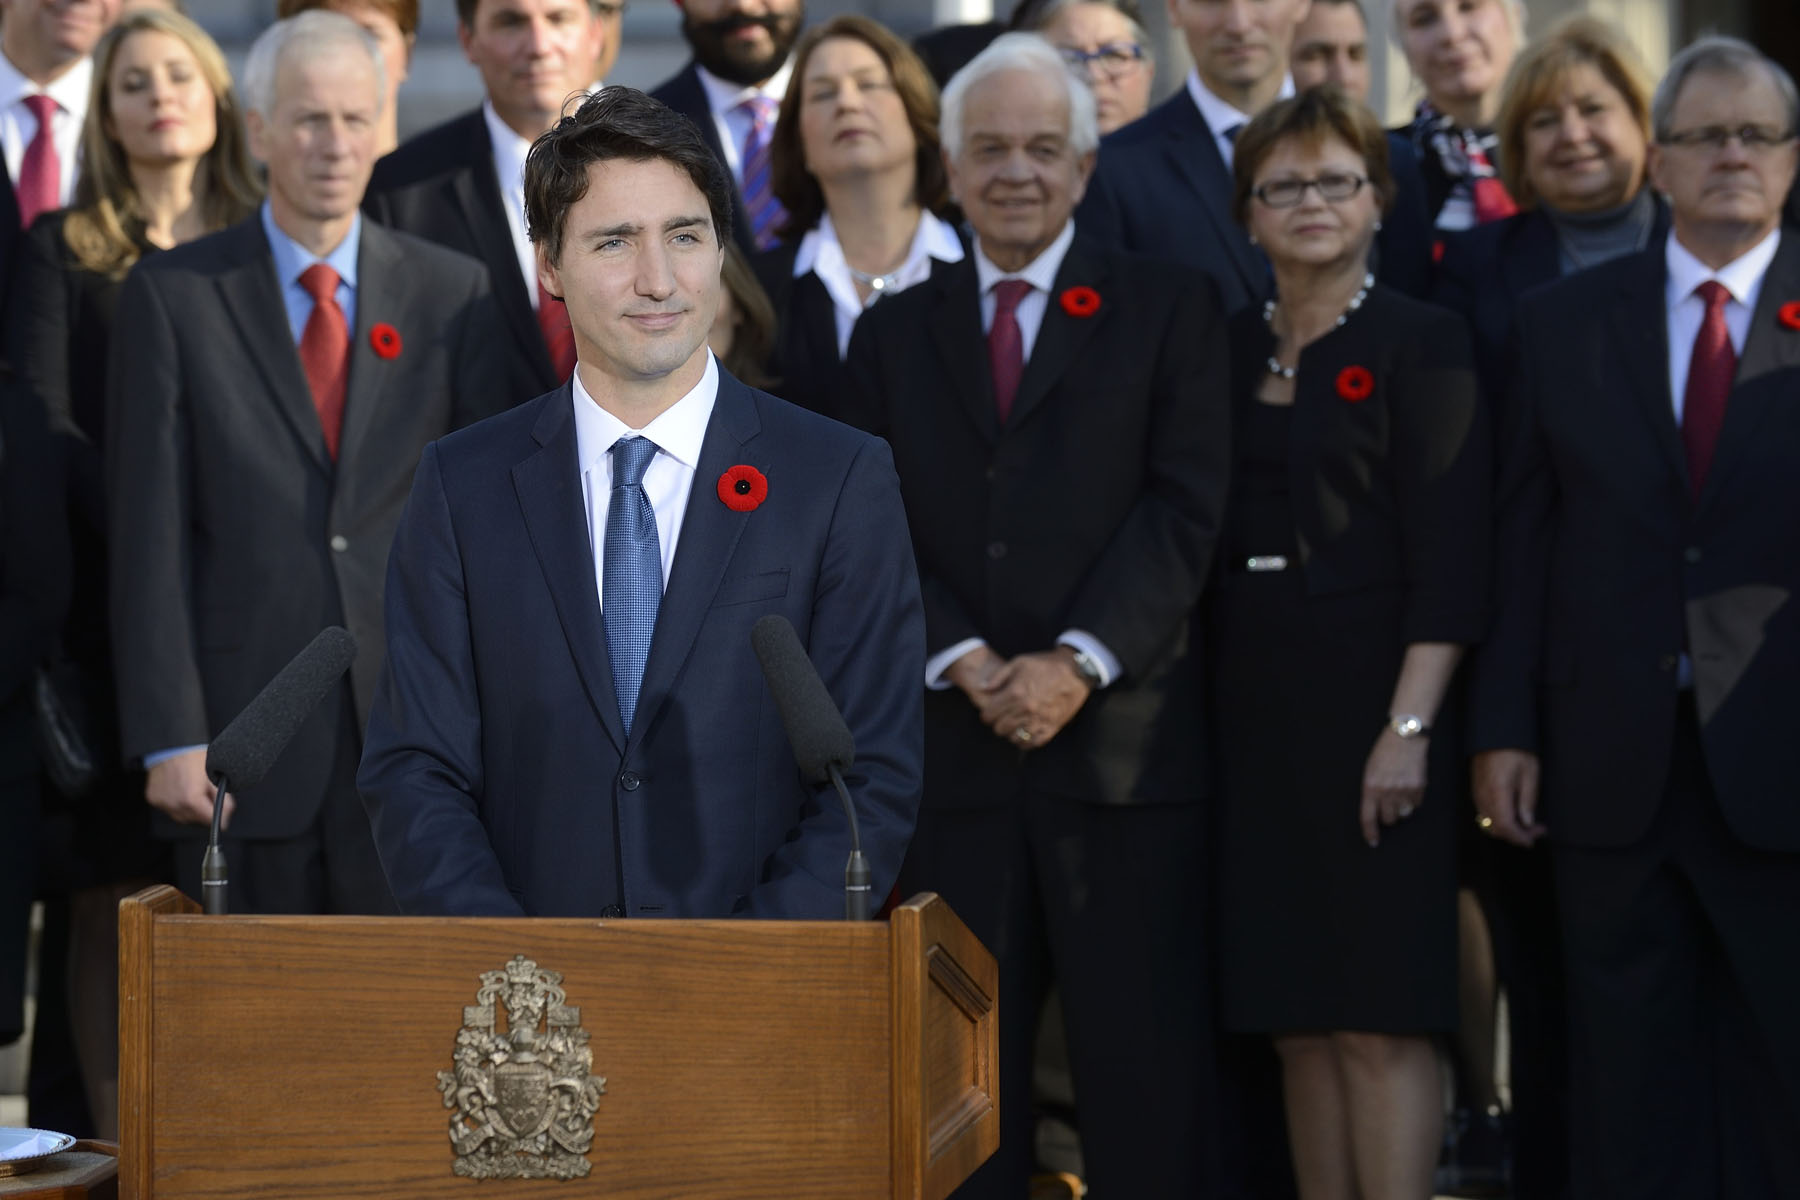 The Prime Minister, in the presence of his Cabinet, delivered a statement in front of the Rideau Hall facade.